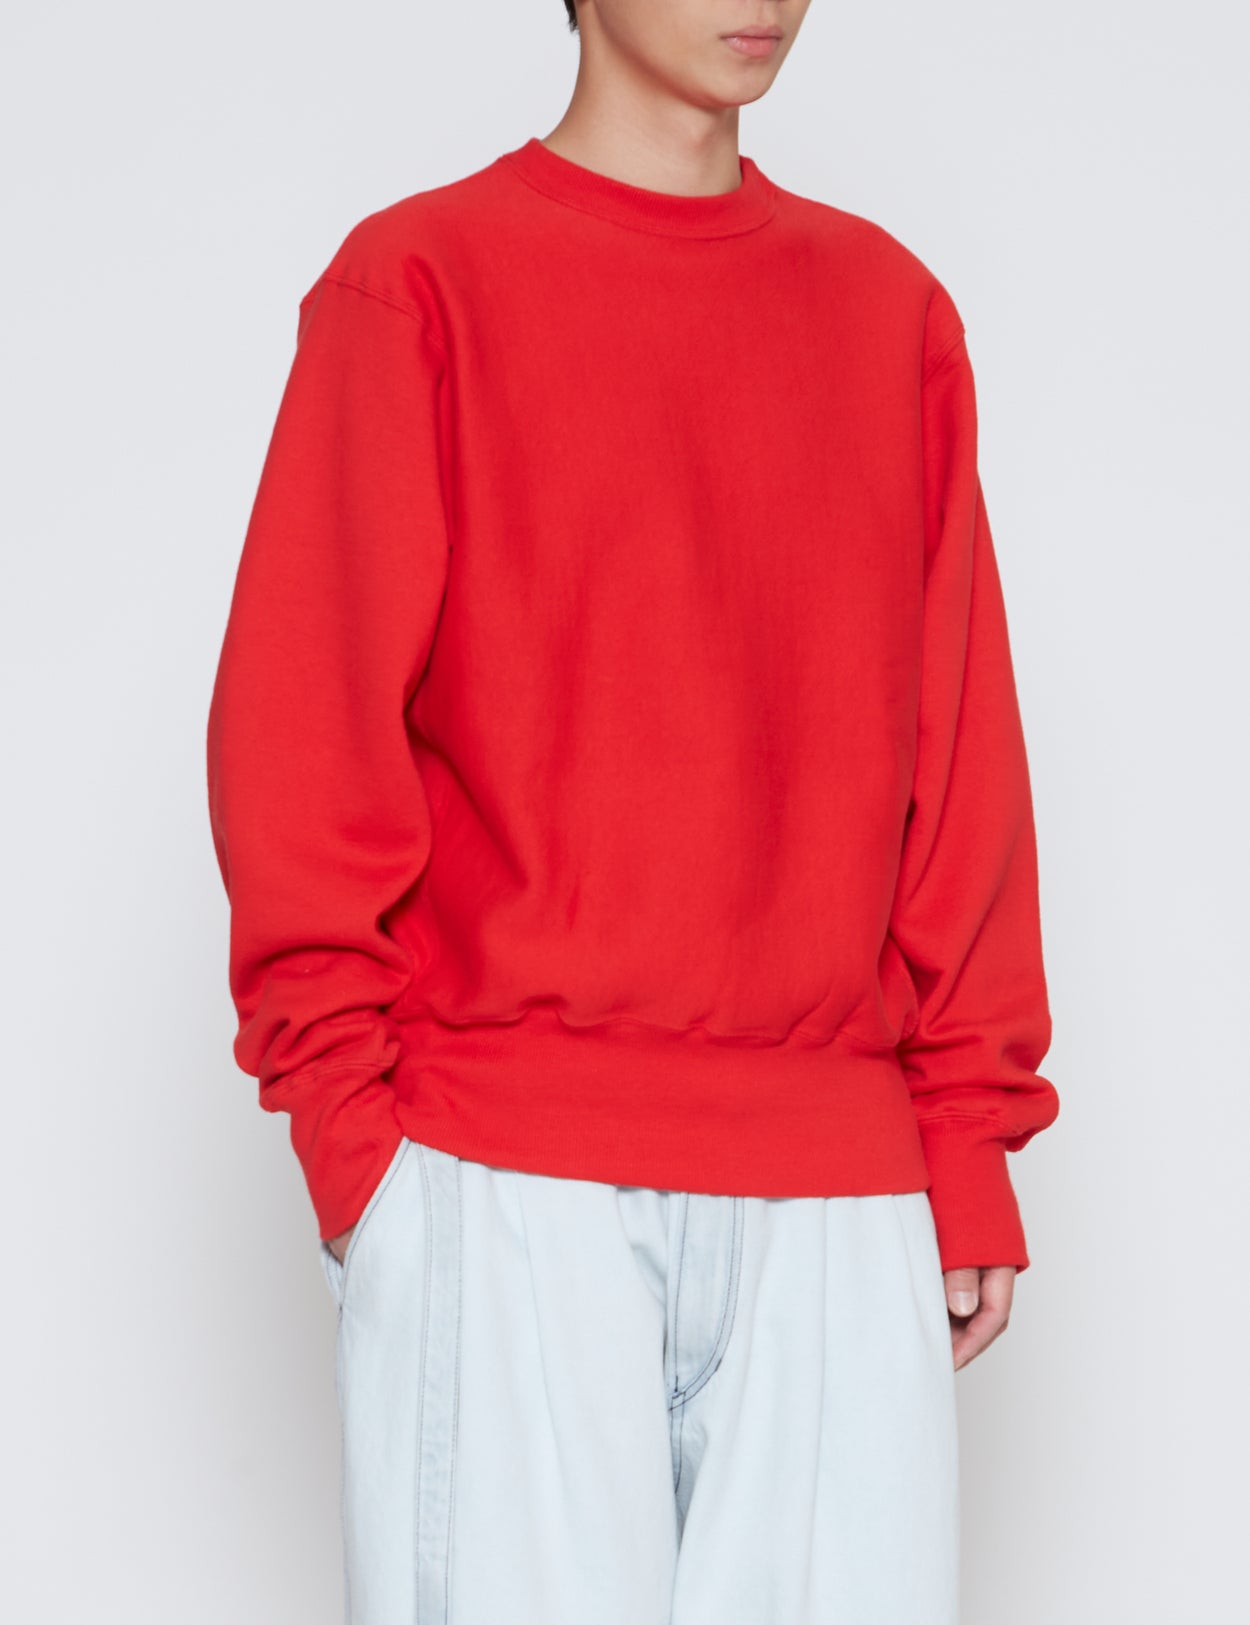 RED CROSS KNIT HEAVYWEIGHT CREWNECK SWEATSHIRT